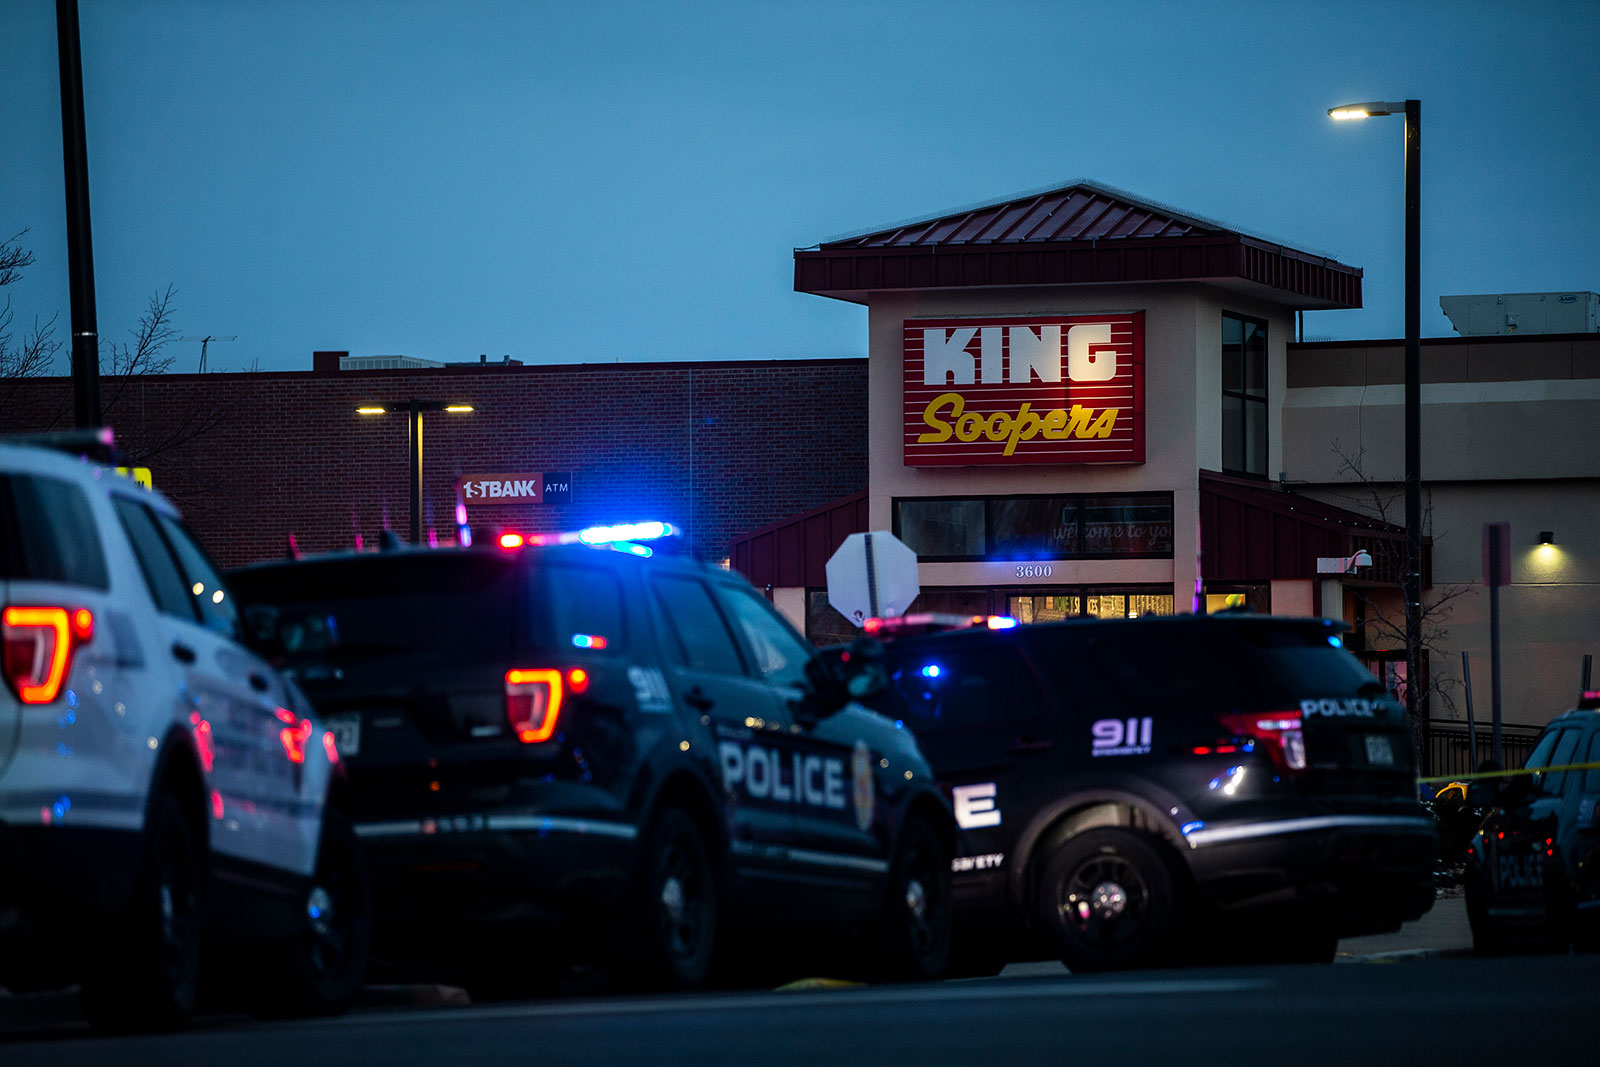 Police respond to the scene of a mass shooting at a King Soopers grocery store in Boulder, Colorado, on March 22.